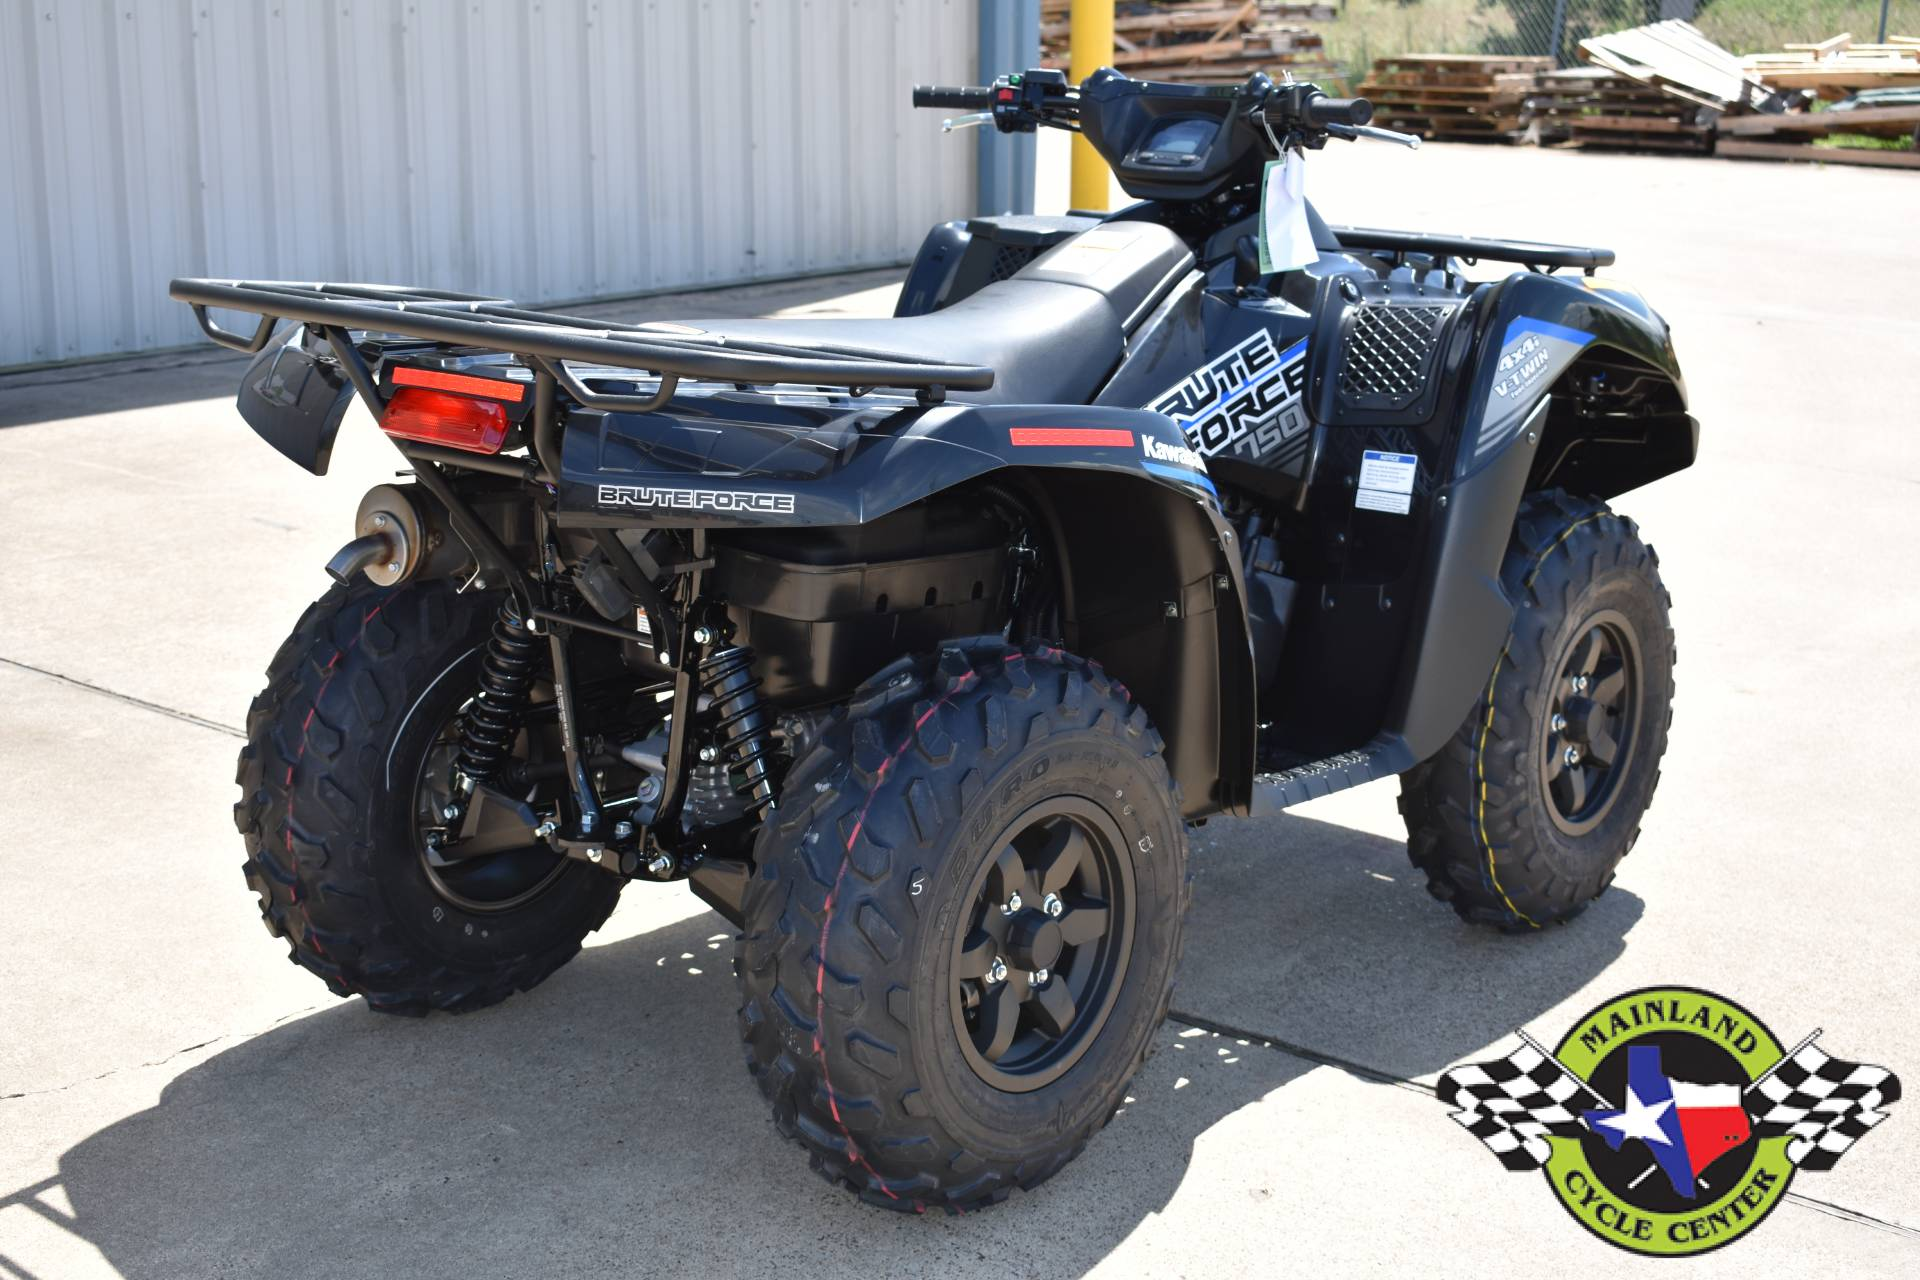 2021 Kawasaki Brute Force 750 4x4i EPS in La Marque, Texas - Photo 3